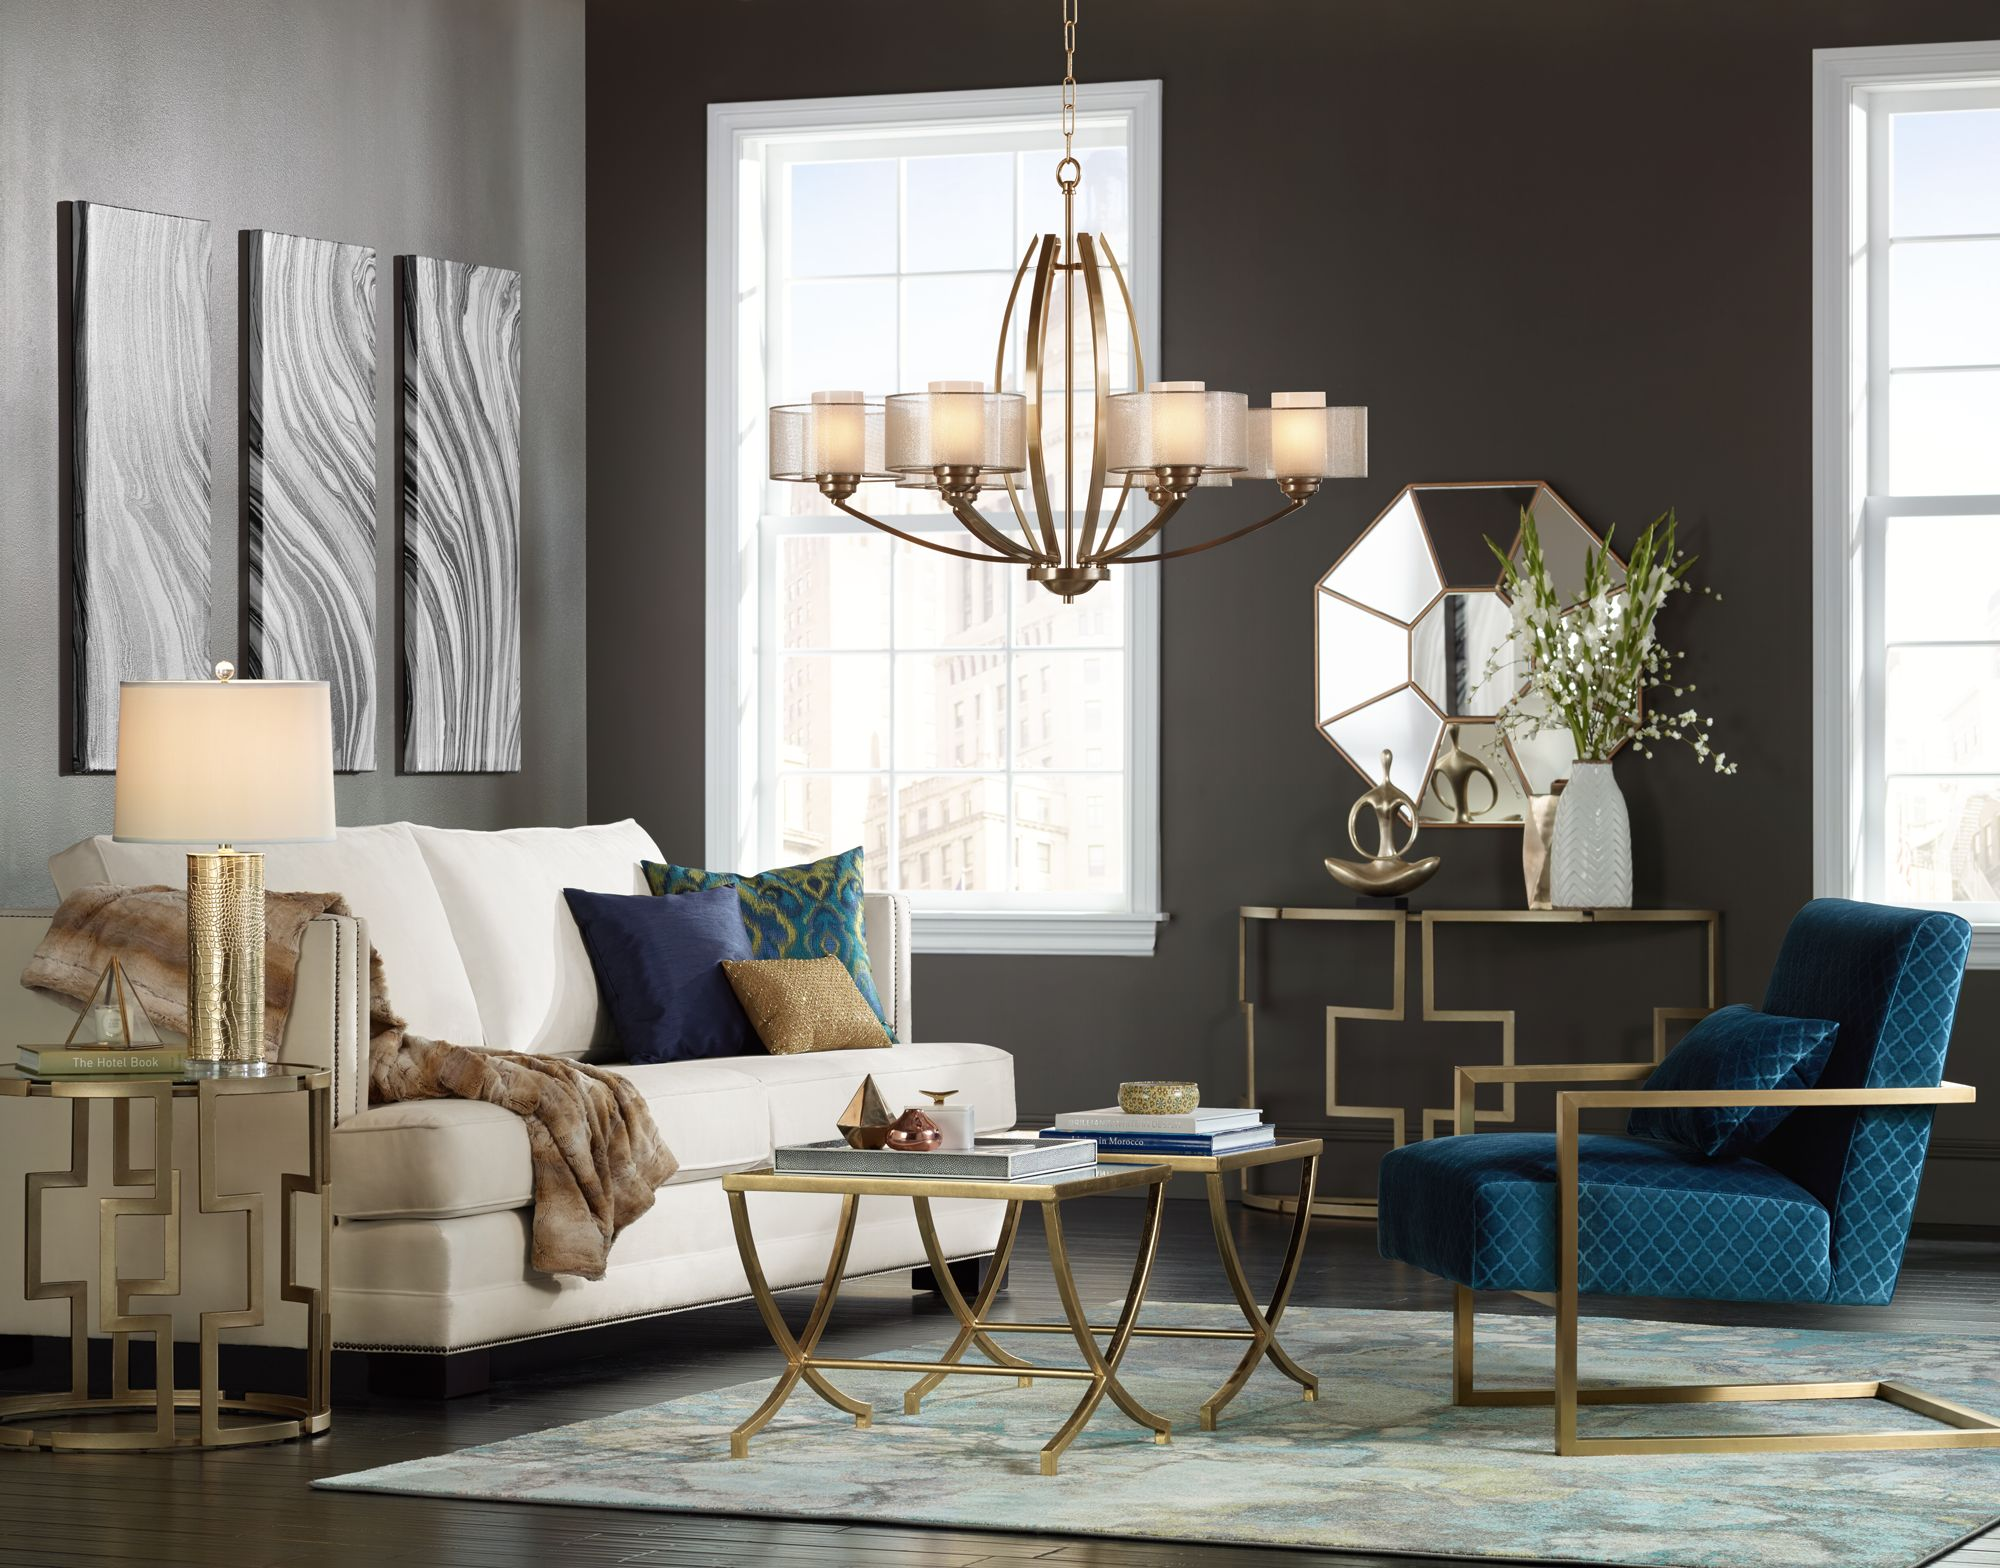 Gold Finish Lighting And Furniture Lends Sparkle To A Living Room.